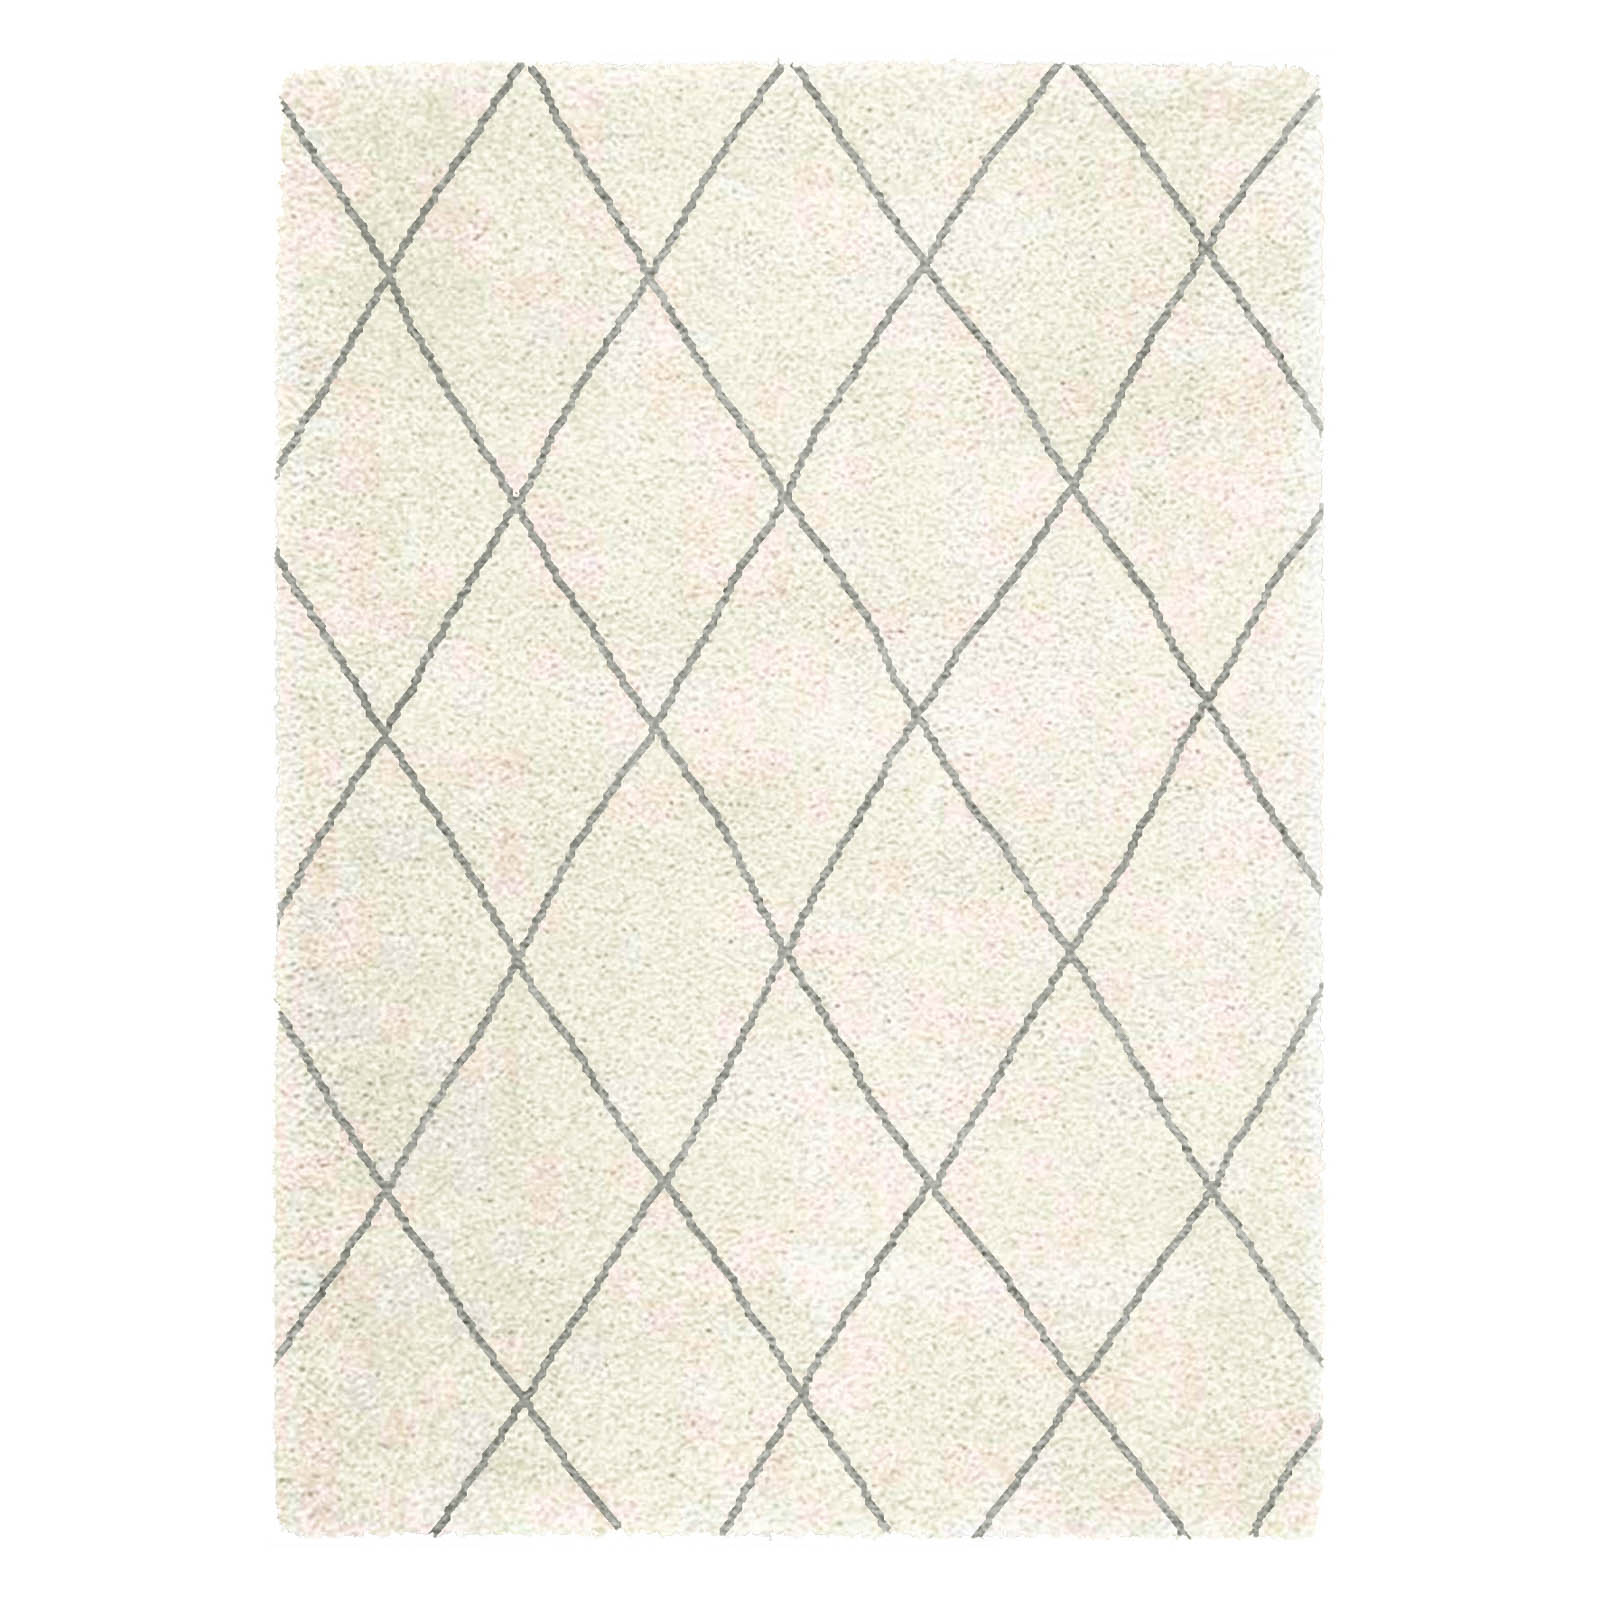 Logan Rugs LG07 in Cream and Grey